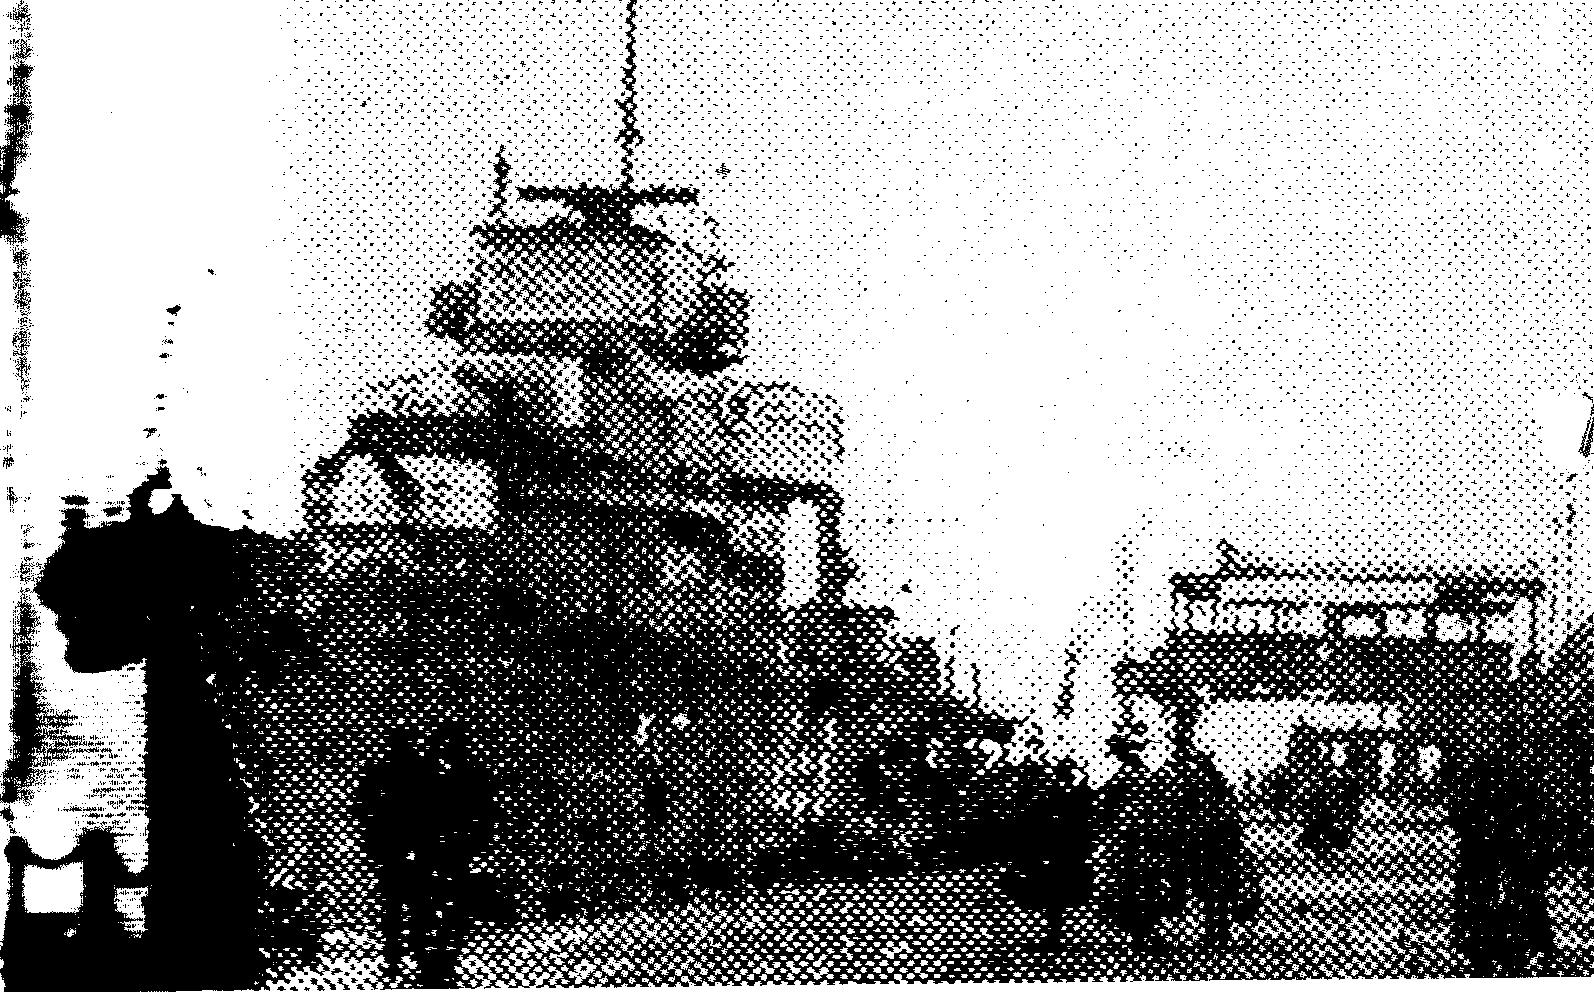 1919 strike destroyer